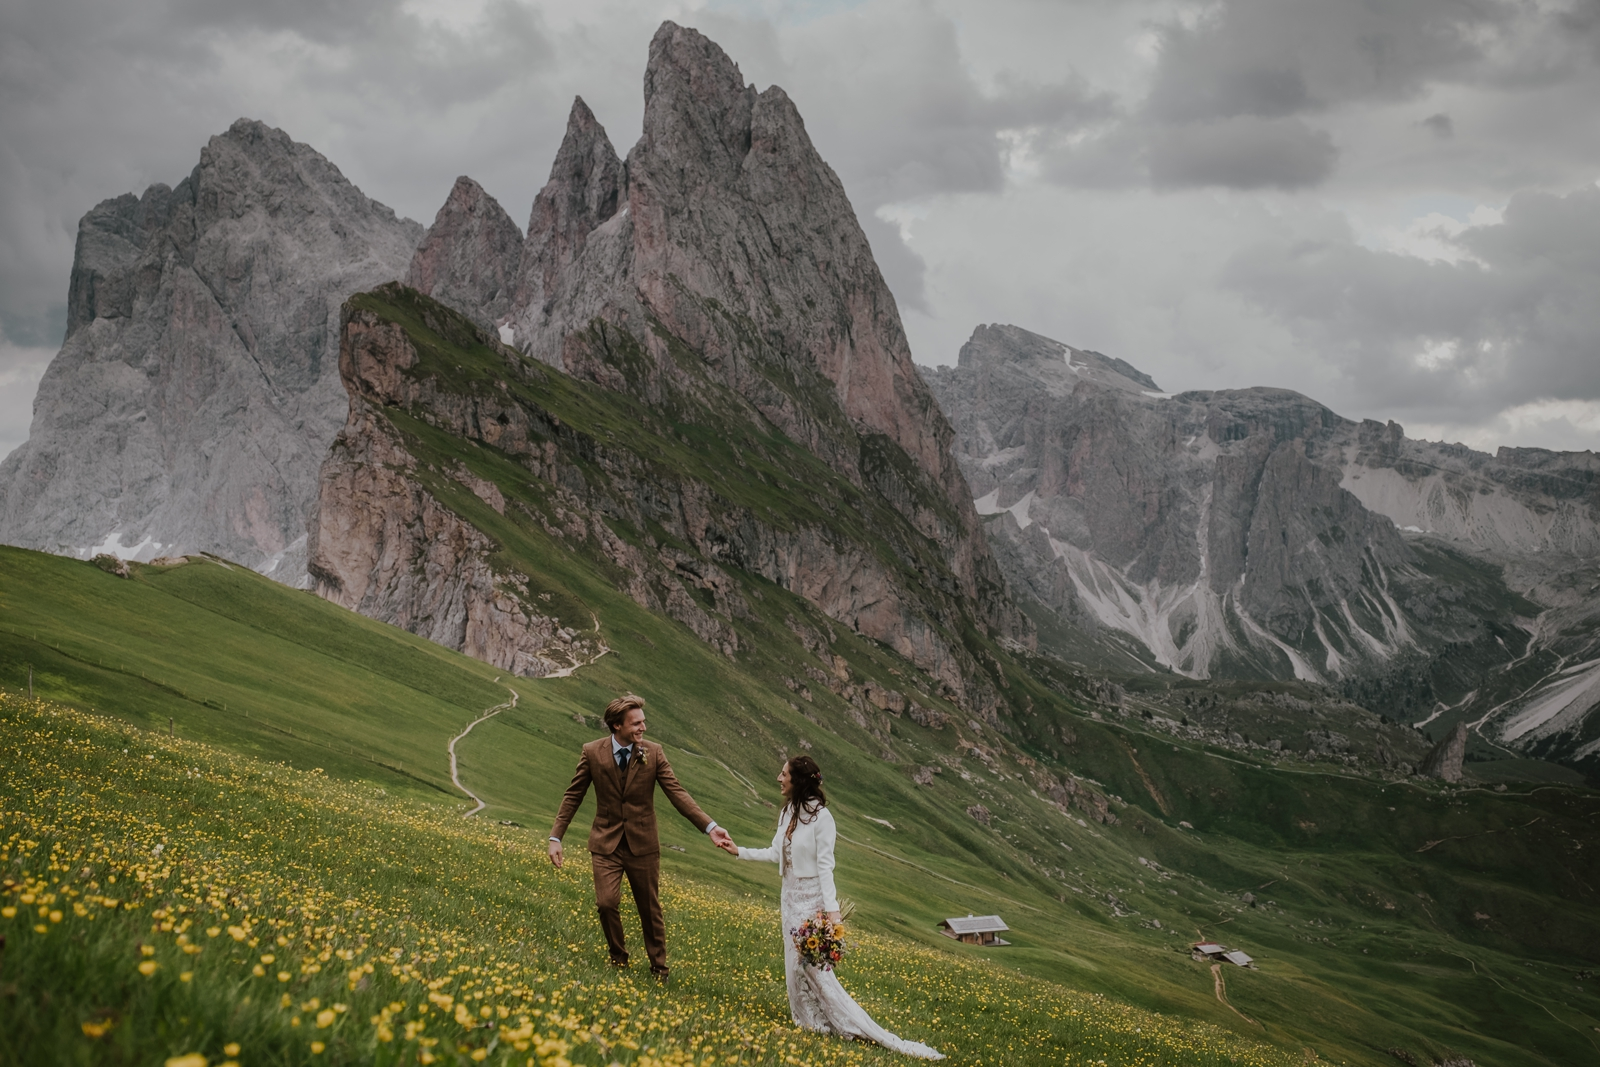 Groom leading bride up the steep mountain hillside of Seceda in the Dolomites with rocky knife-edge peaks in the distance